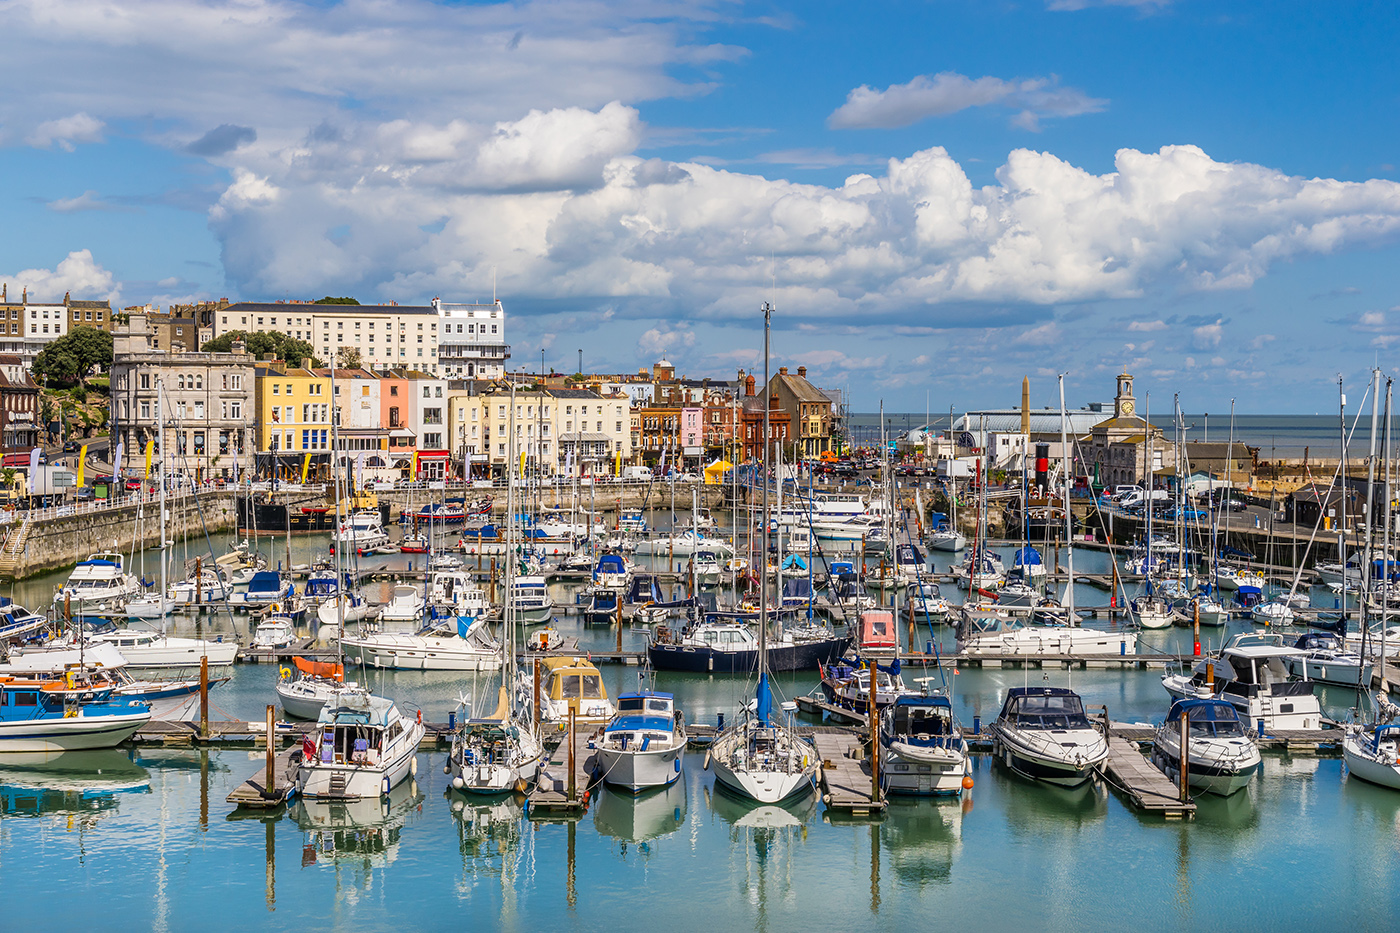 A sunny day at Ramsgate Harbour, with boats in the water and pretty buildings in the distance